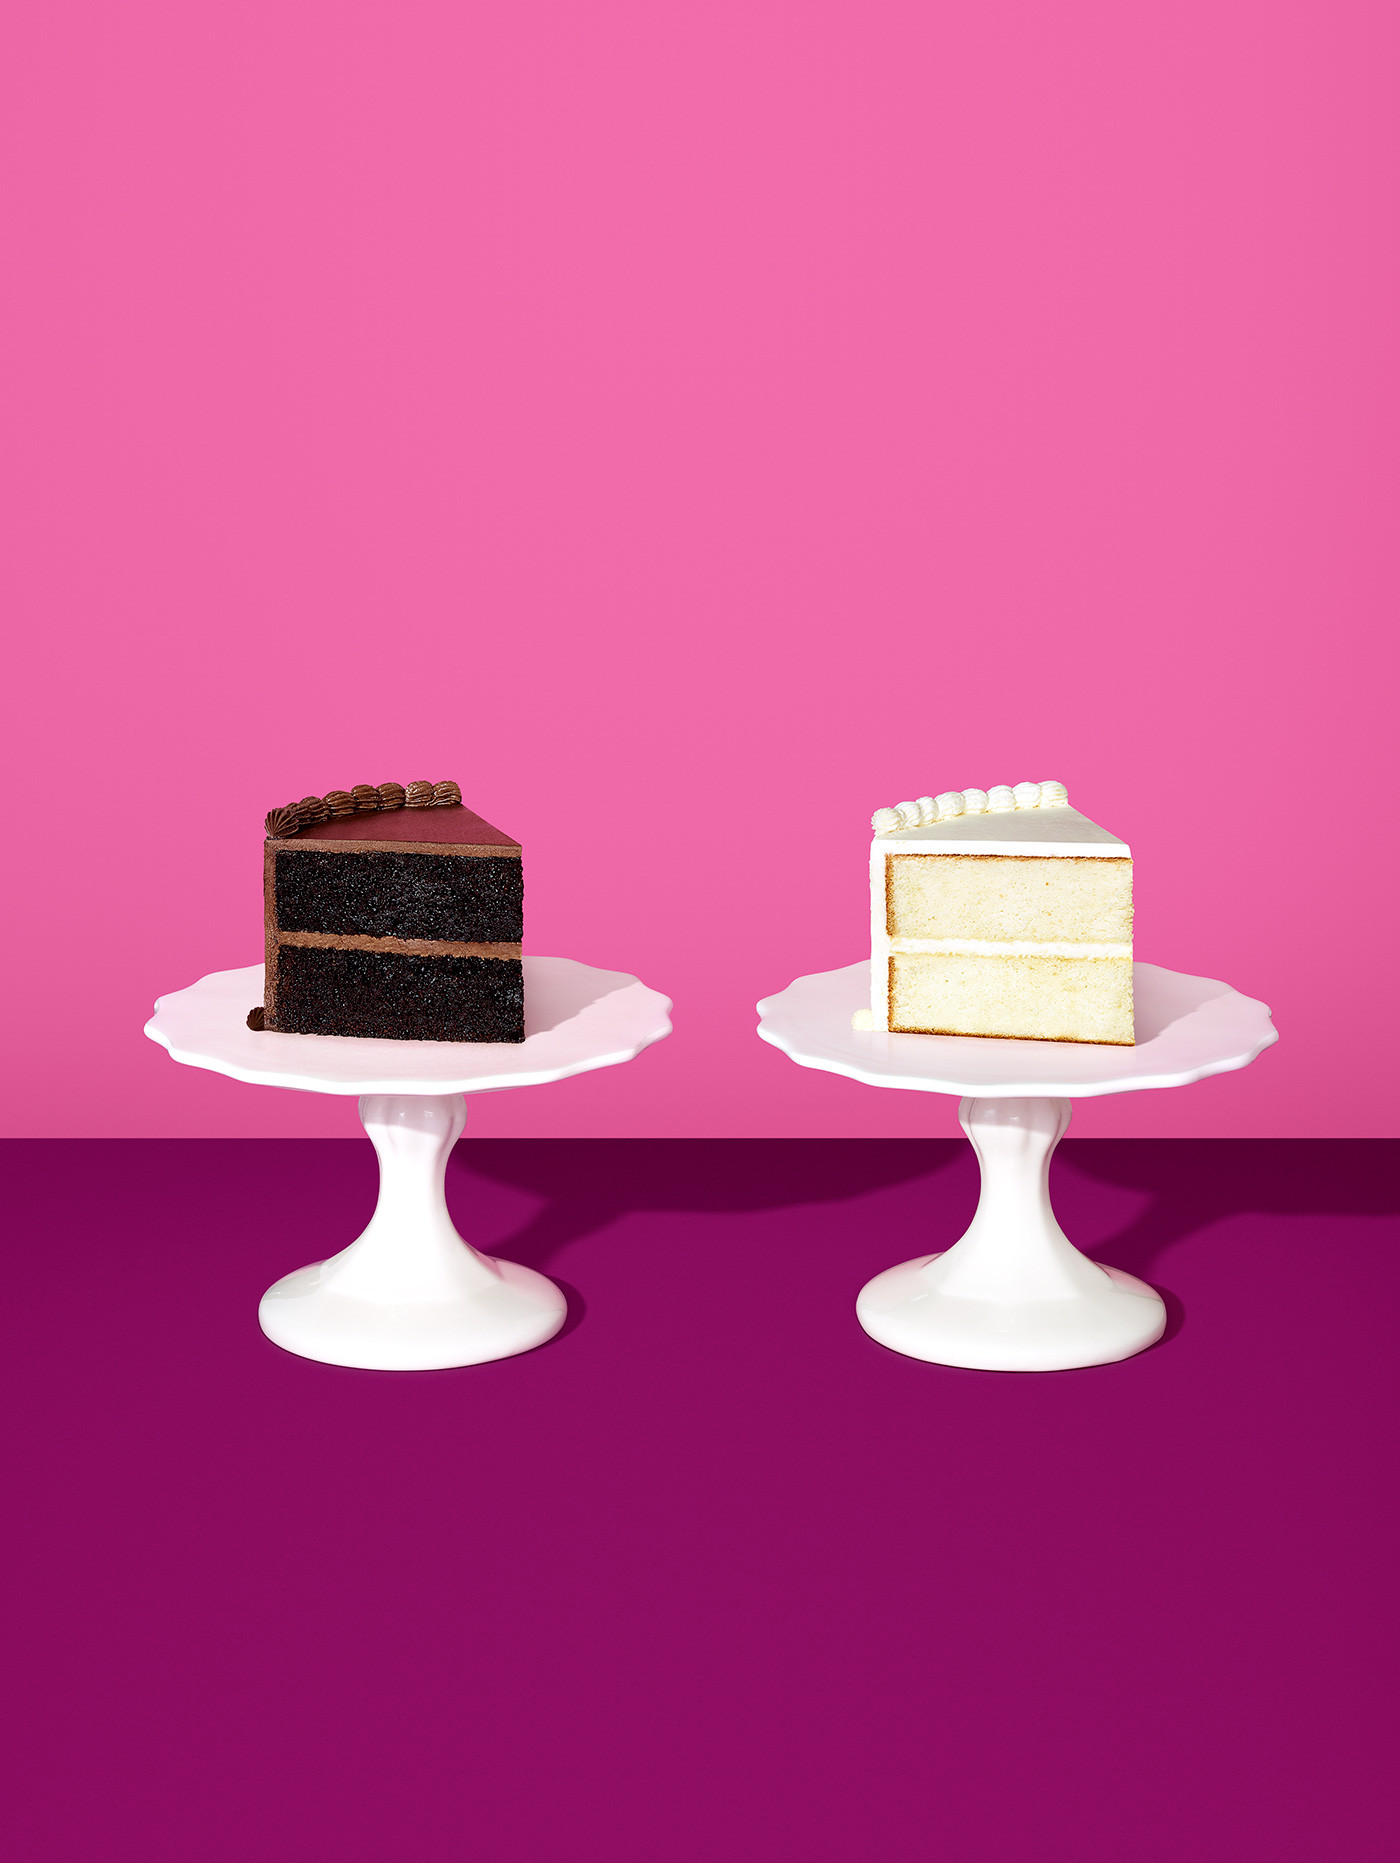 https://tickertapecdn.tdameritrade.com/assets/images/pages/md/One chocolate one vanilla piece of cake on two respective white raised platters